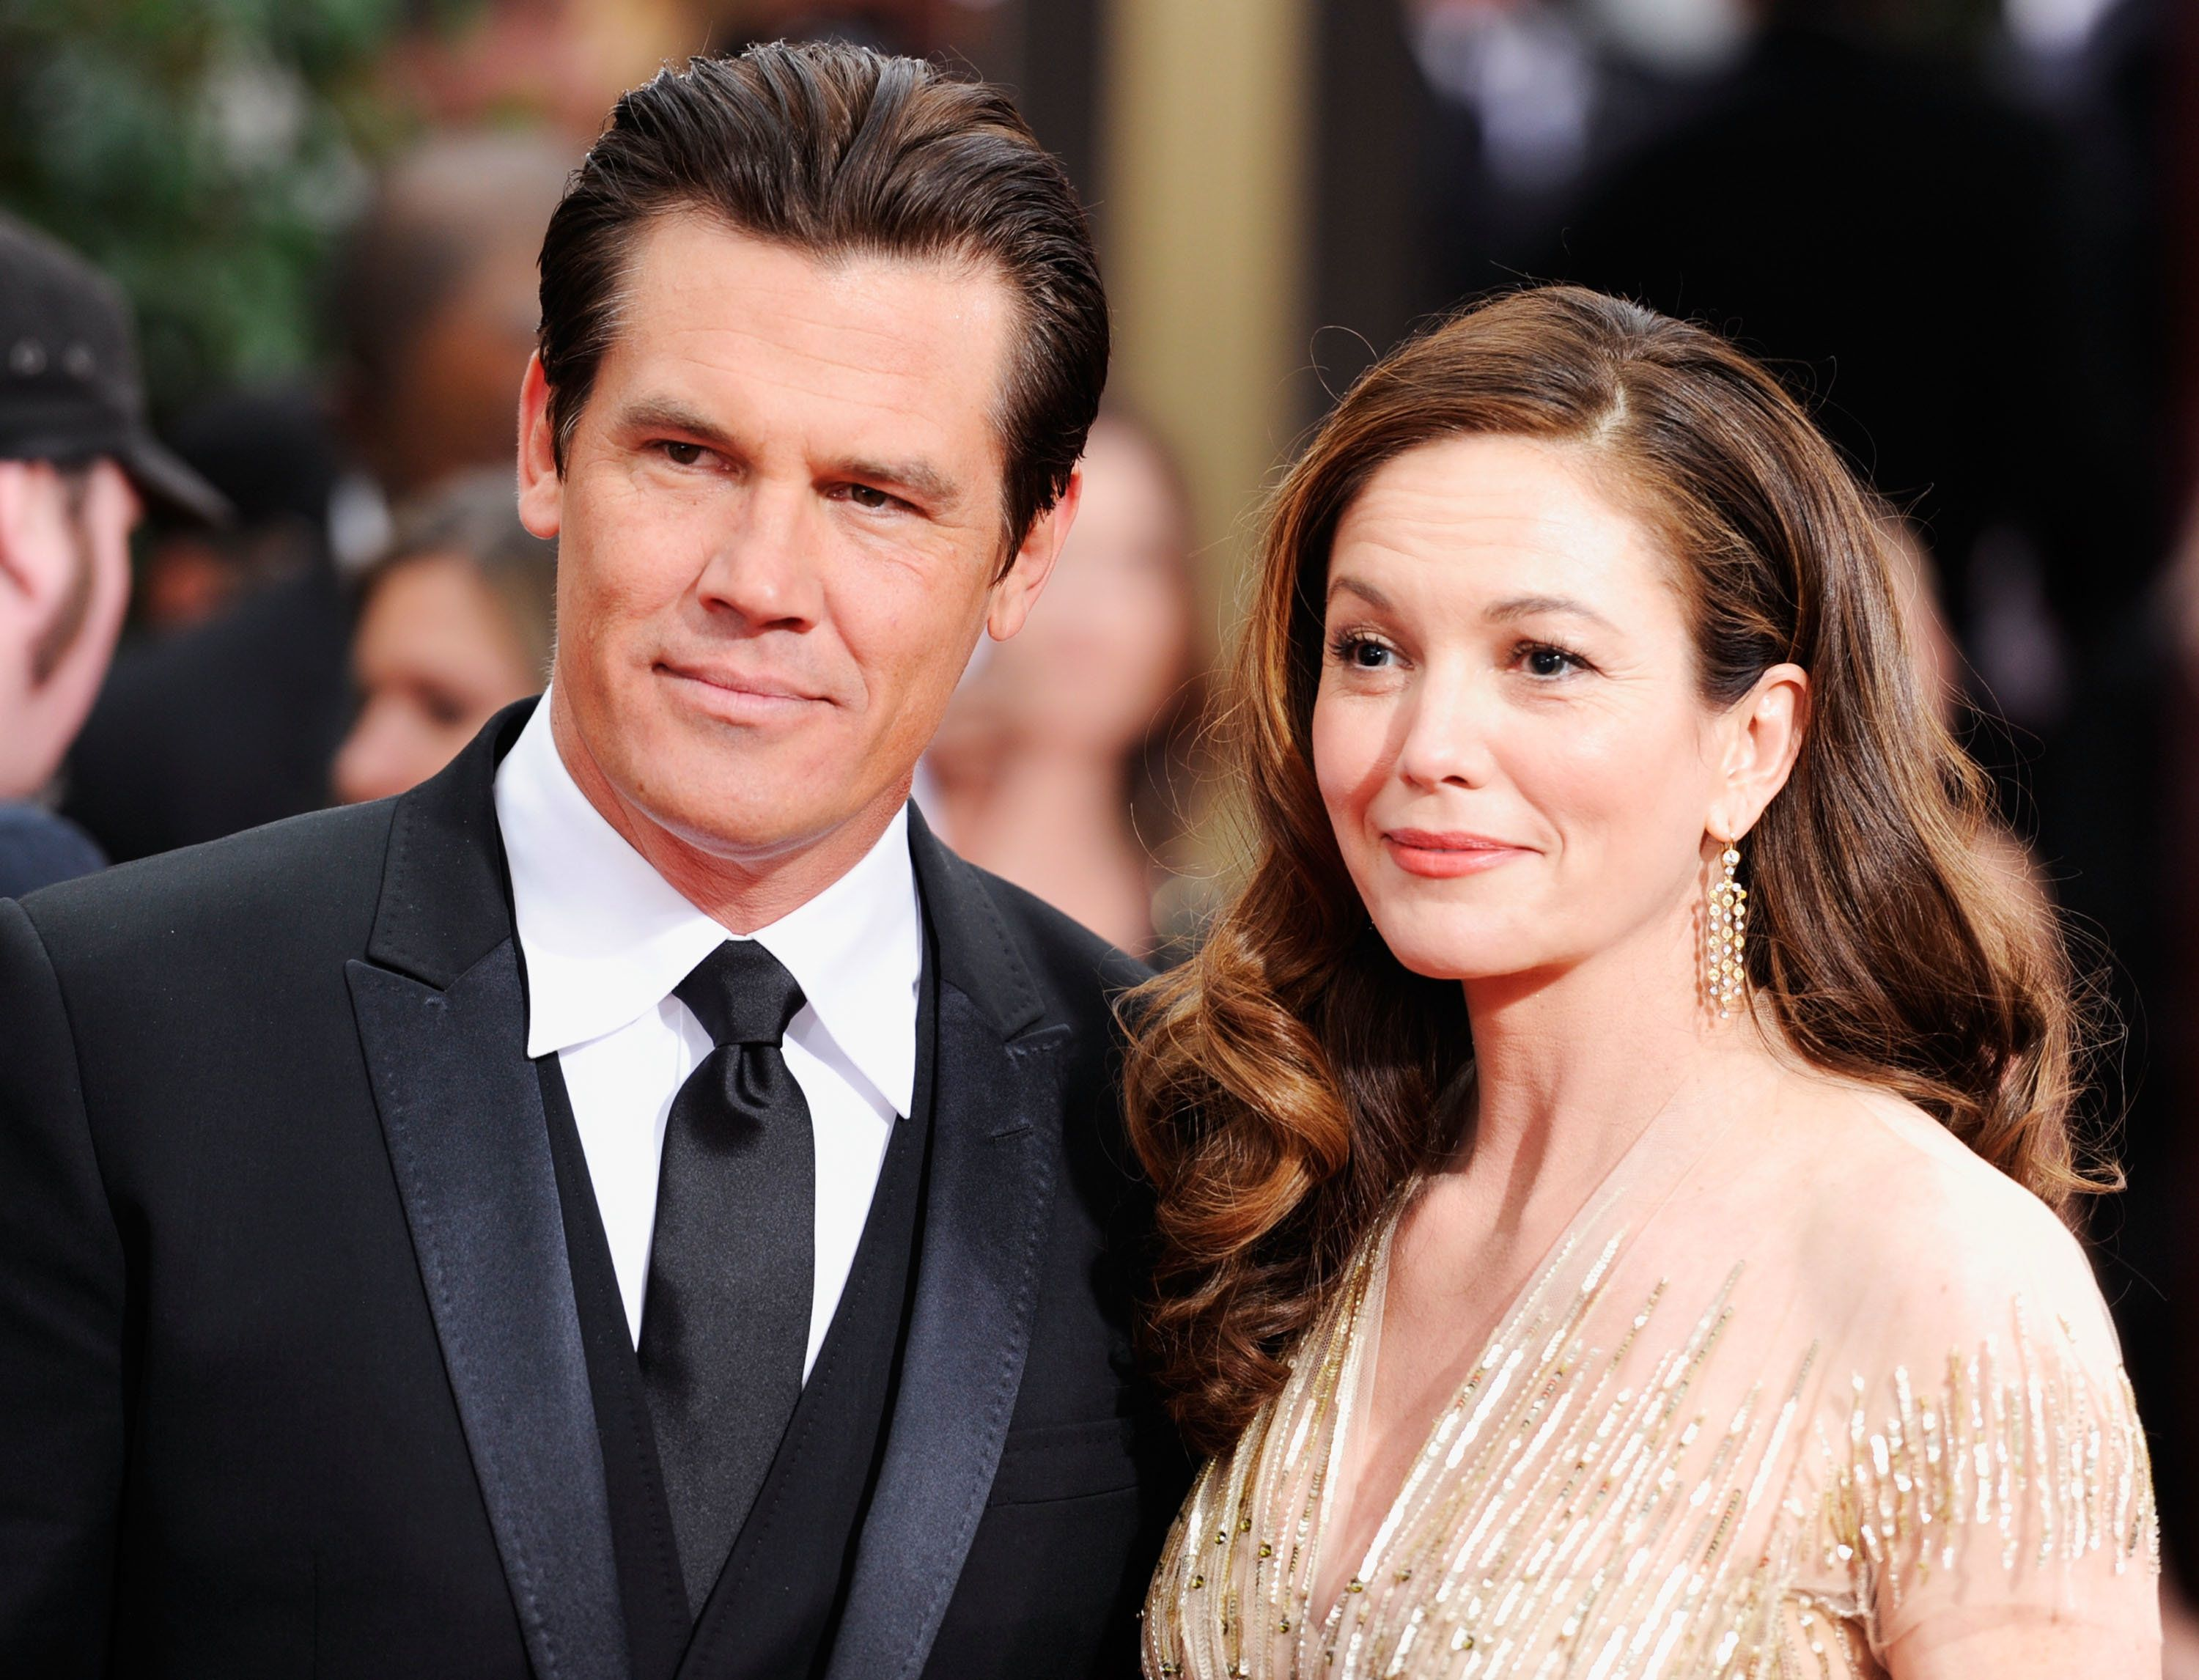 Josh Brolin and Diane Lane arrive at the 69th Annual Golden Globe Awards in 2012.